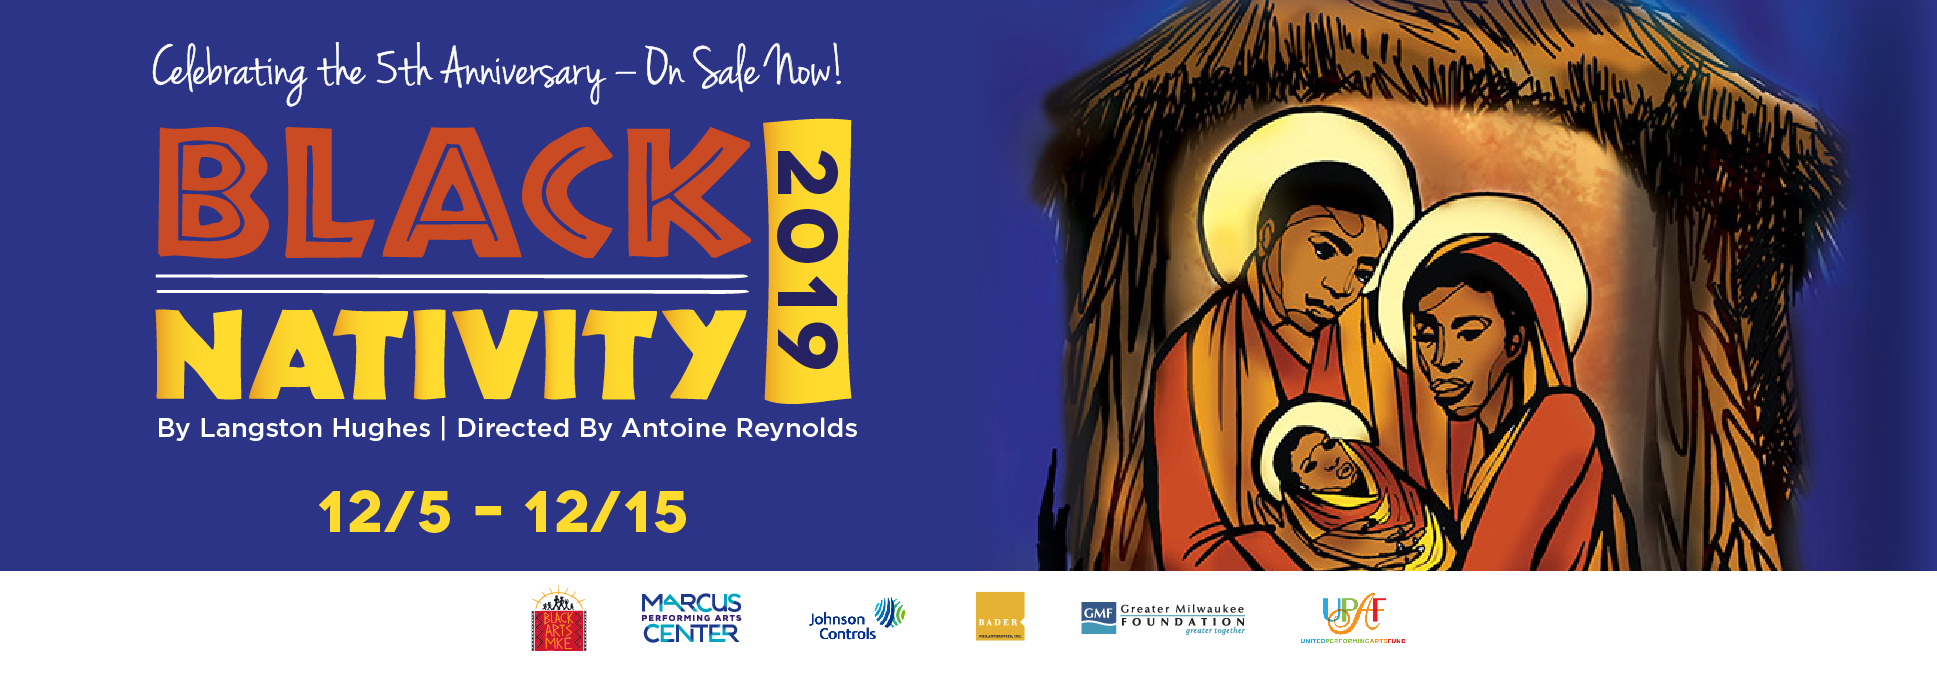 Black Nativity 2019 at the Marcus Center in Milwaukee